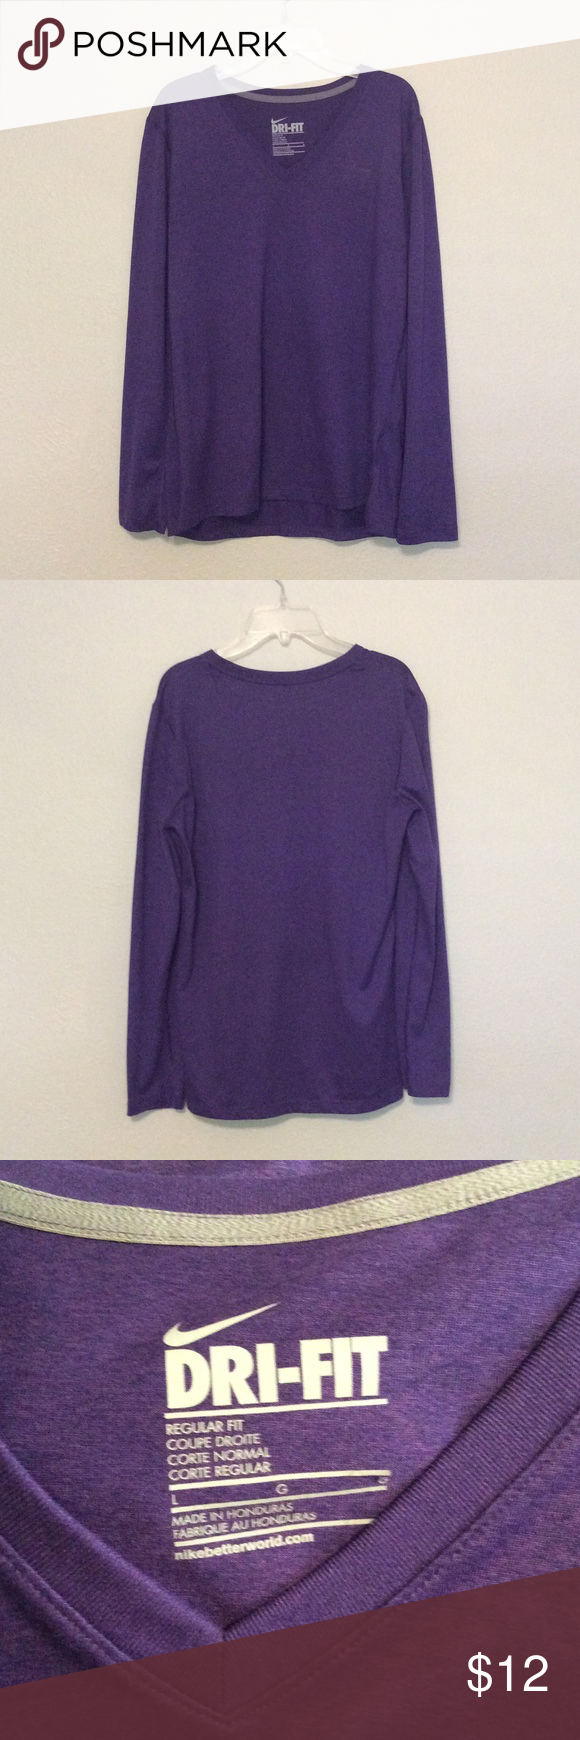 Nike Long Sleeve Dr-Fit Women's Nike Dri-Fit Regular fit. In excellent condition. Only worn a couple times, no tears or stains. Nike Tops Tees - Long Sleeve